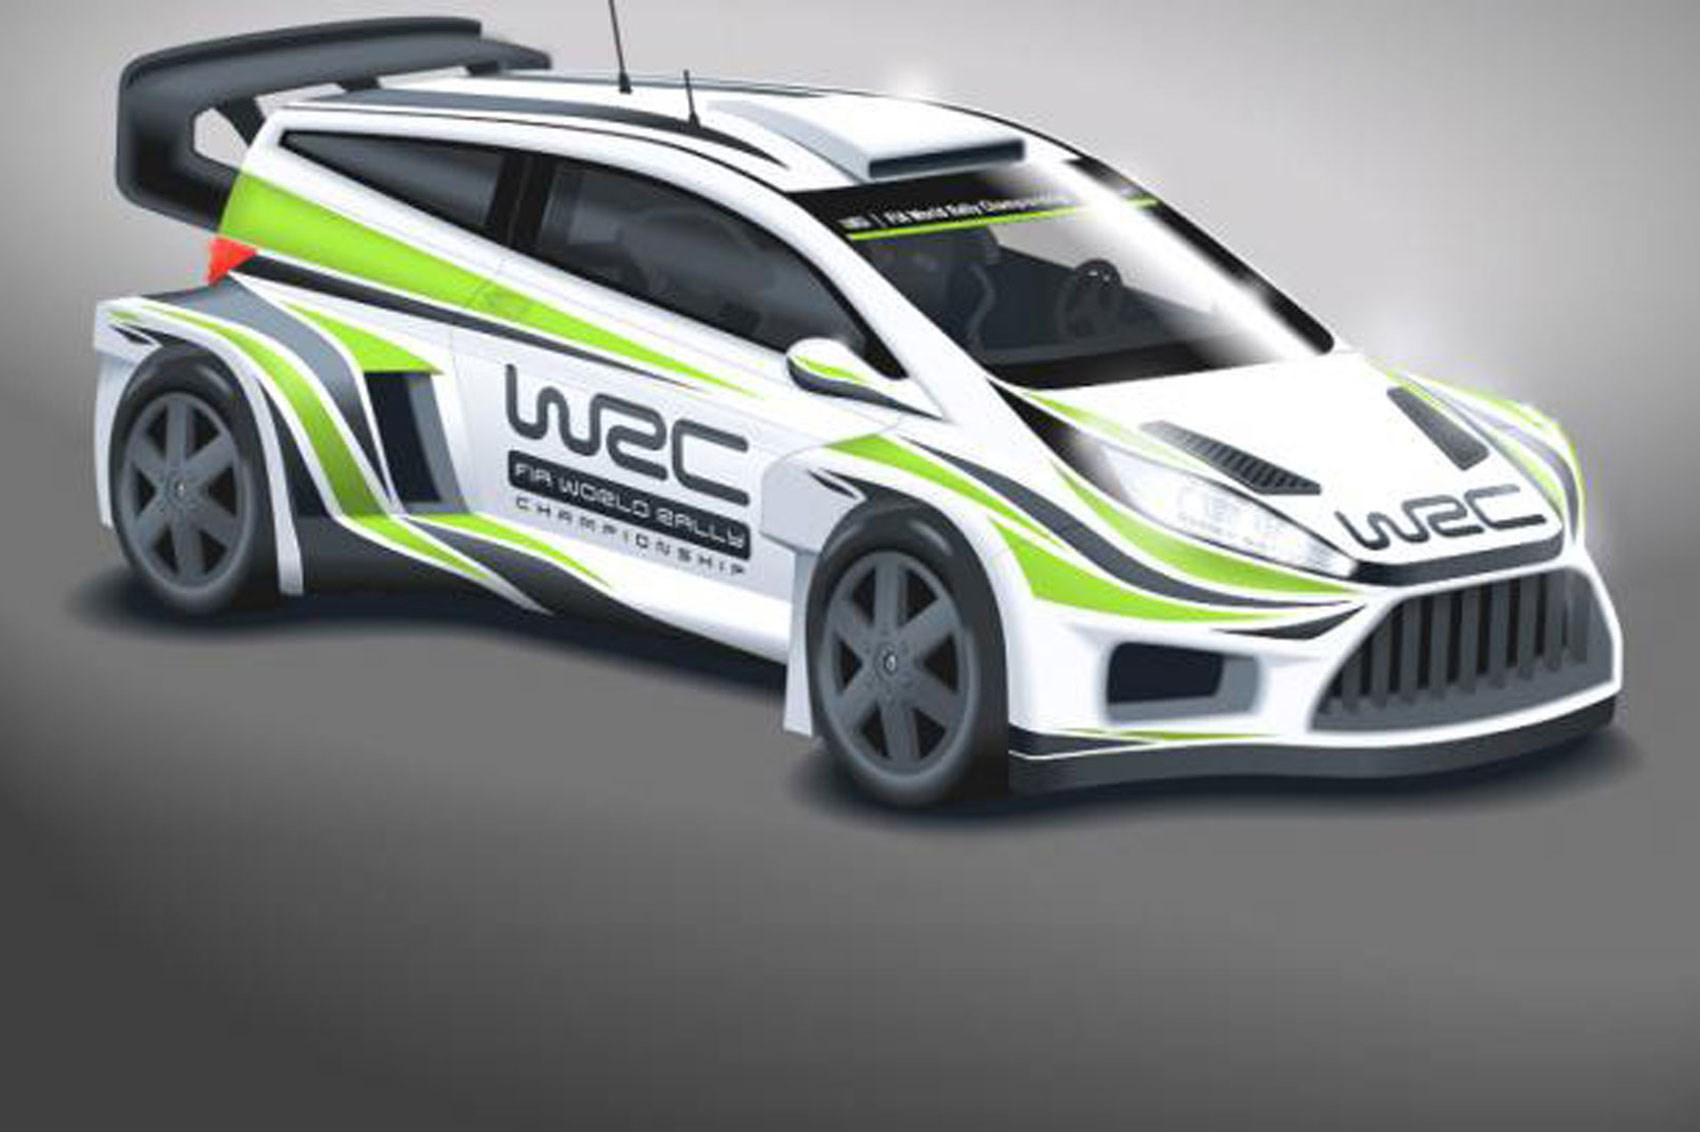 Ultrablogus  Surprising Wild New Look For Wrc Cars In  By Car Magazine With Foxy Wrc Cars Will Get Wider Bodies Bigger Wings And More Power For  With Attractive  Dodge Caliber Interior Also  Hyundai Sonata Interior In Addition  Honda Accord Interior And  Nissan Maxima Interior As Well As  Jeep Grand Cherokee Interior Additionally Honda Odyssey  Interior From Carmagazinecouk With Ultrablogus  Foxy Wild New Look For Wrc Cars In  By Car Magazine With Attractive Wrc Cars Will Get Wider Bodies Bigger Wings And More Power For  And Surprising  Dodge Caliber Interior Also  Hyundai Sonata Interior In Addition  Honda Accord Interior From Carmagazinecouk